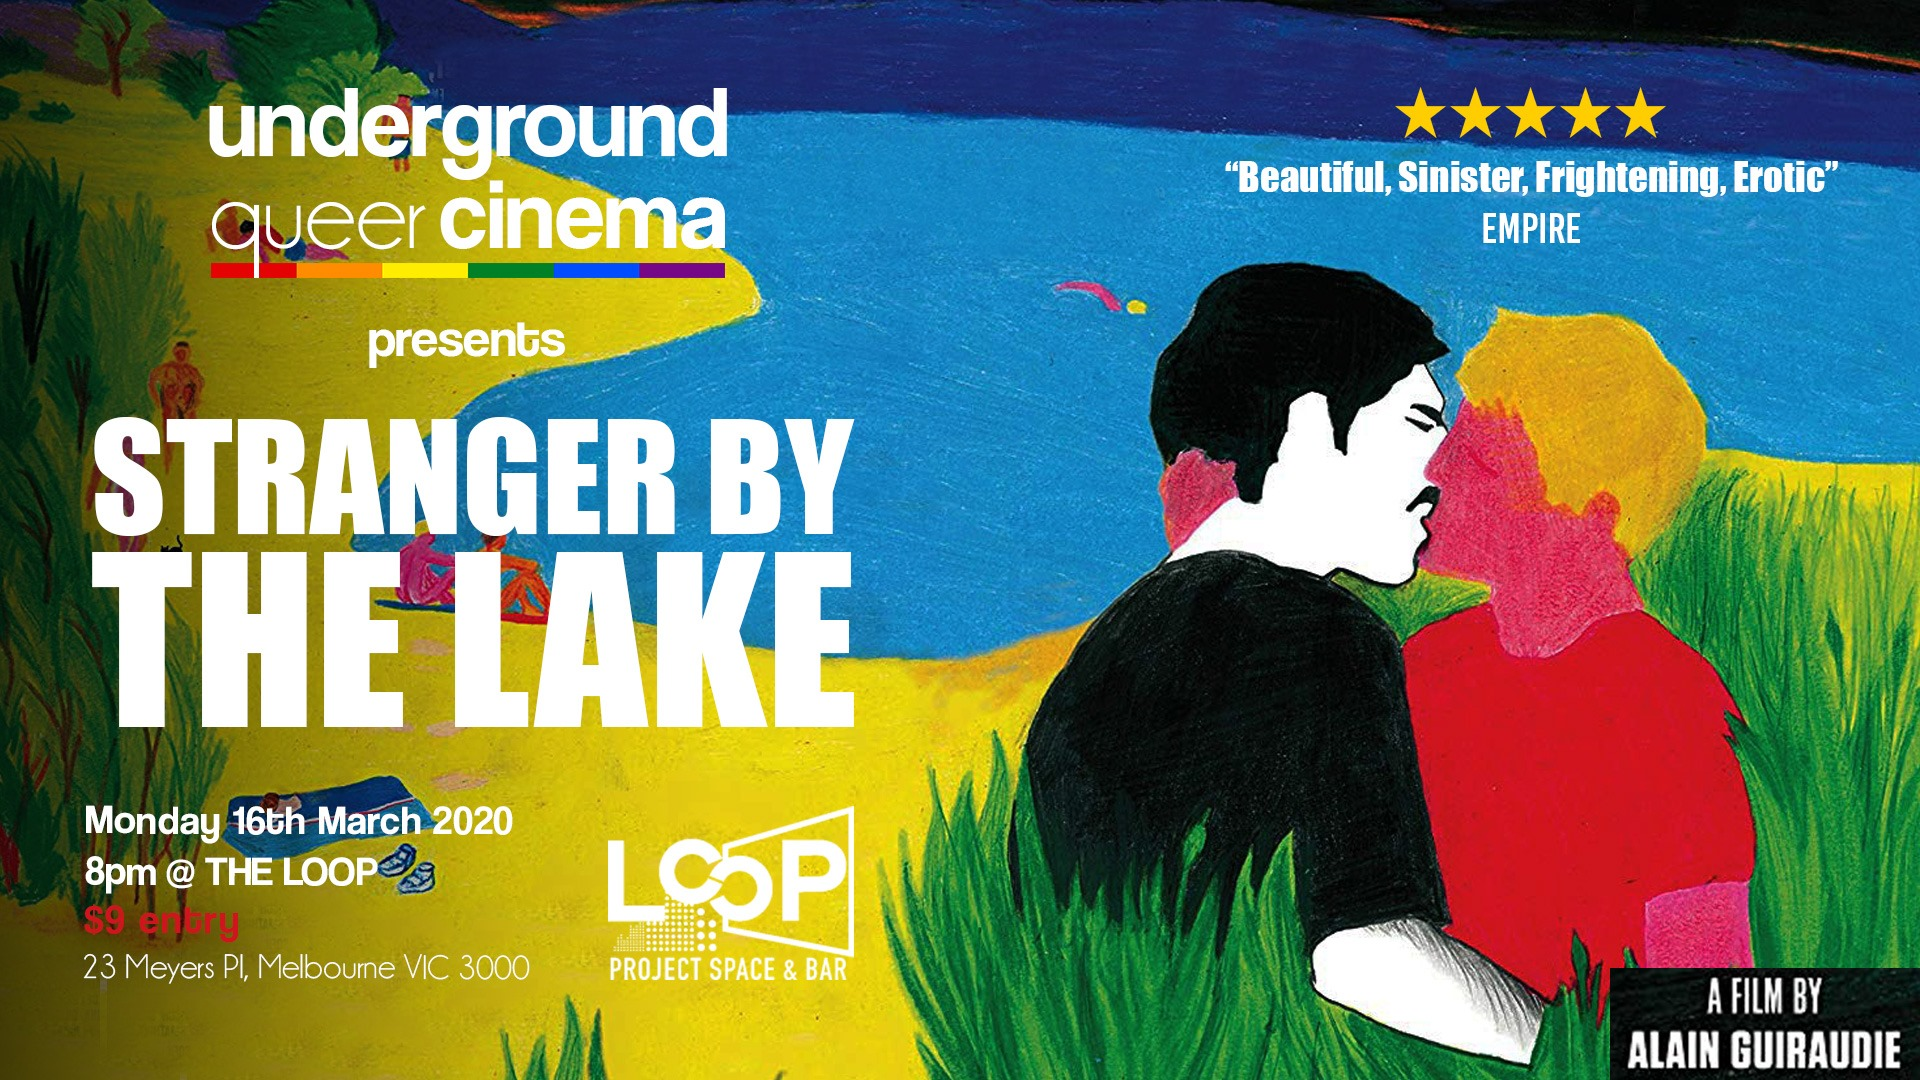 Underground Queer Cinema presents Stranger by the Lake